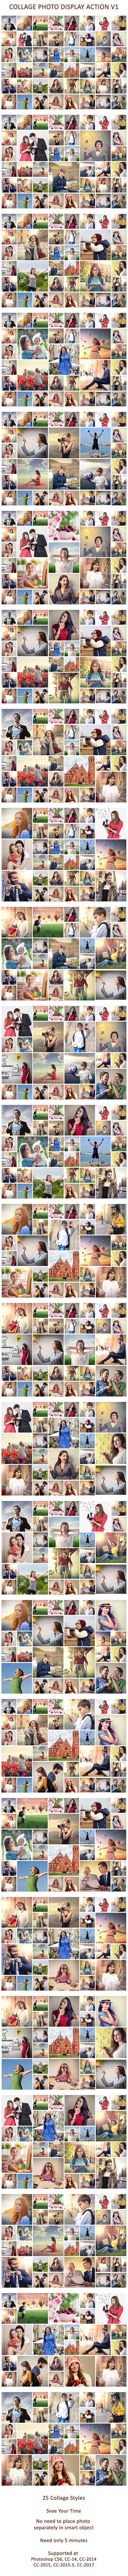 Collage Photo Display Action V1